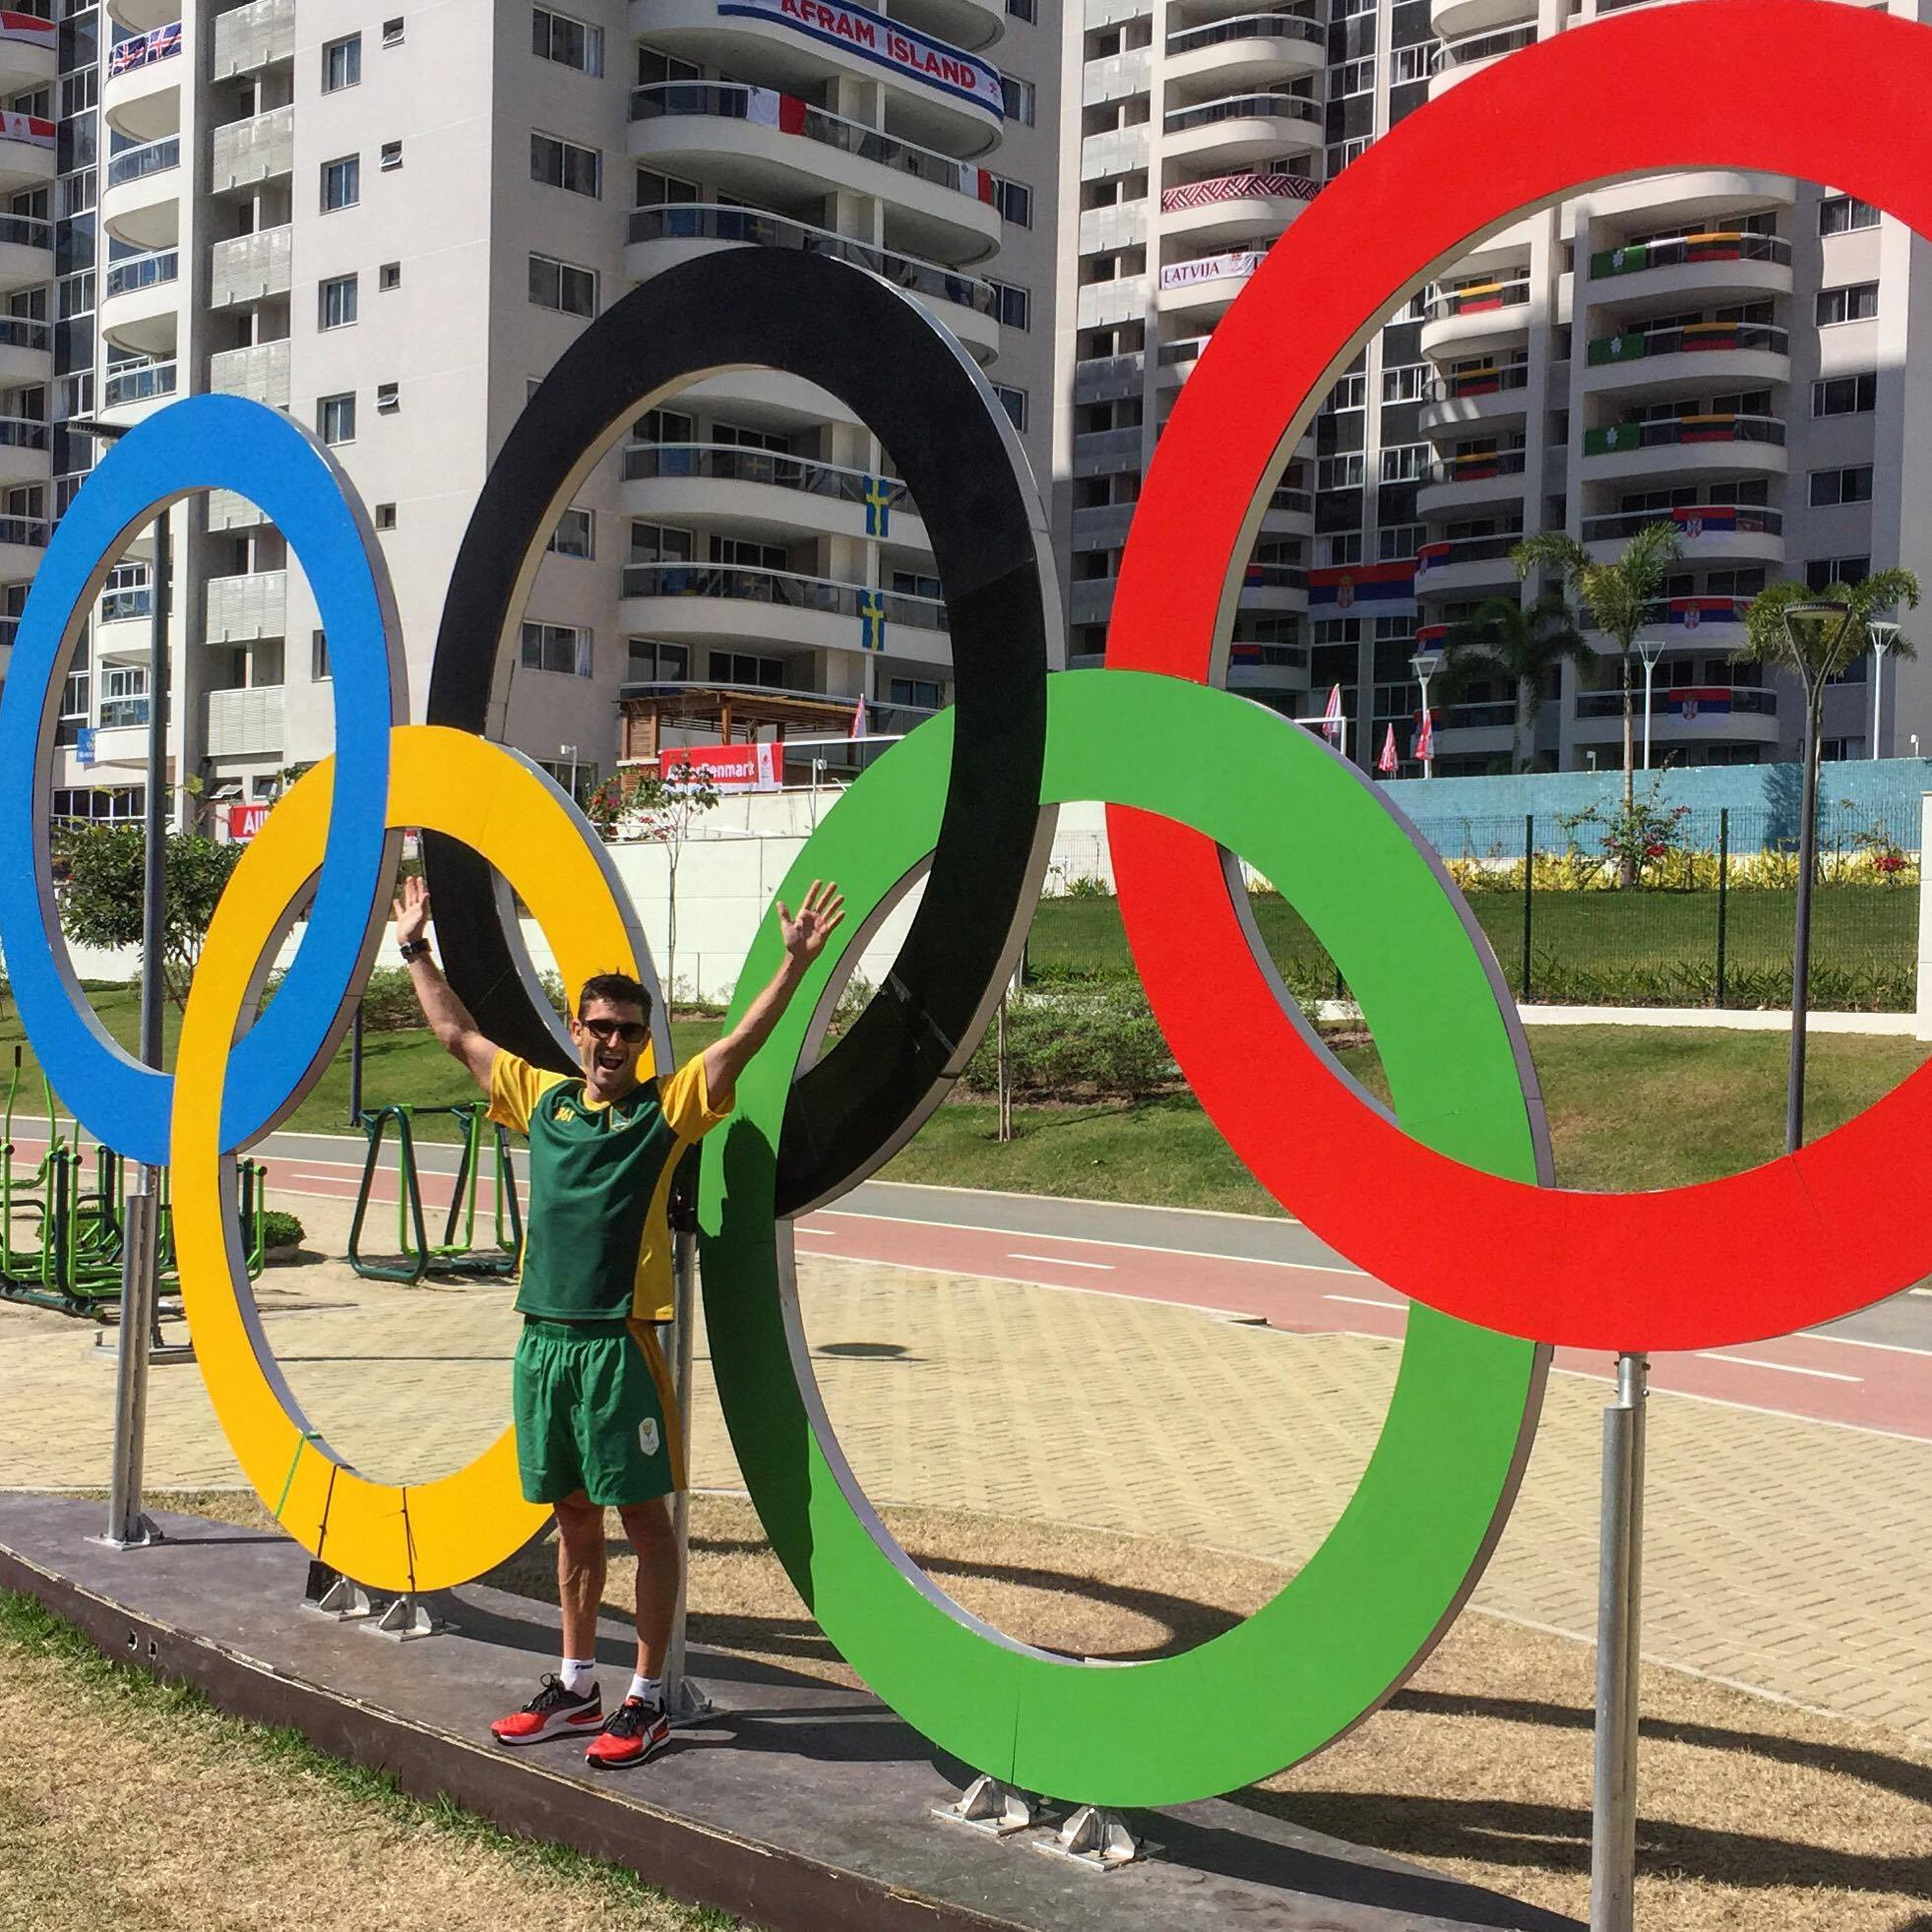 From not being able to lift his shoulder above 45 degrees in April to winning the World Duathlon Championship eight weeks later. And then in July having one of his best swims ever Richard Murray is as ready as he will ever be for the Olympic Games in Rio. Photo: Richard Murray in the Olympic Village.